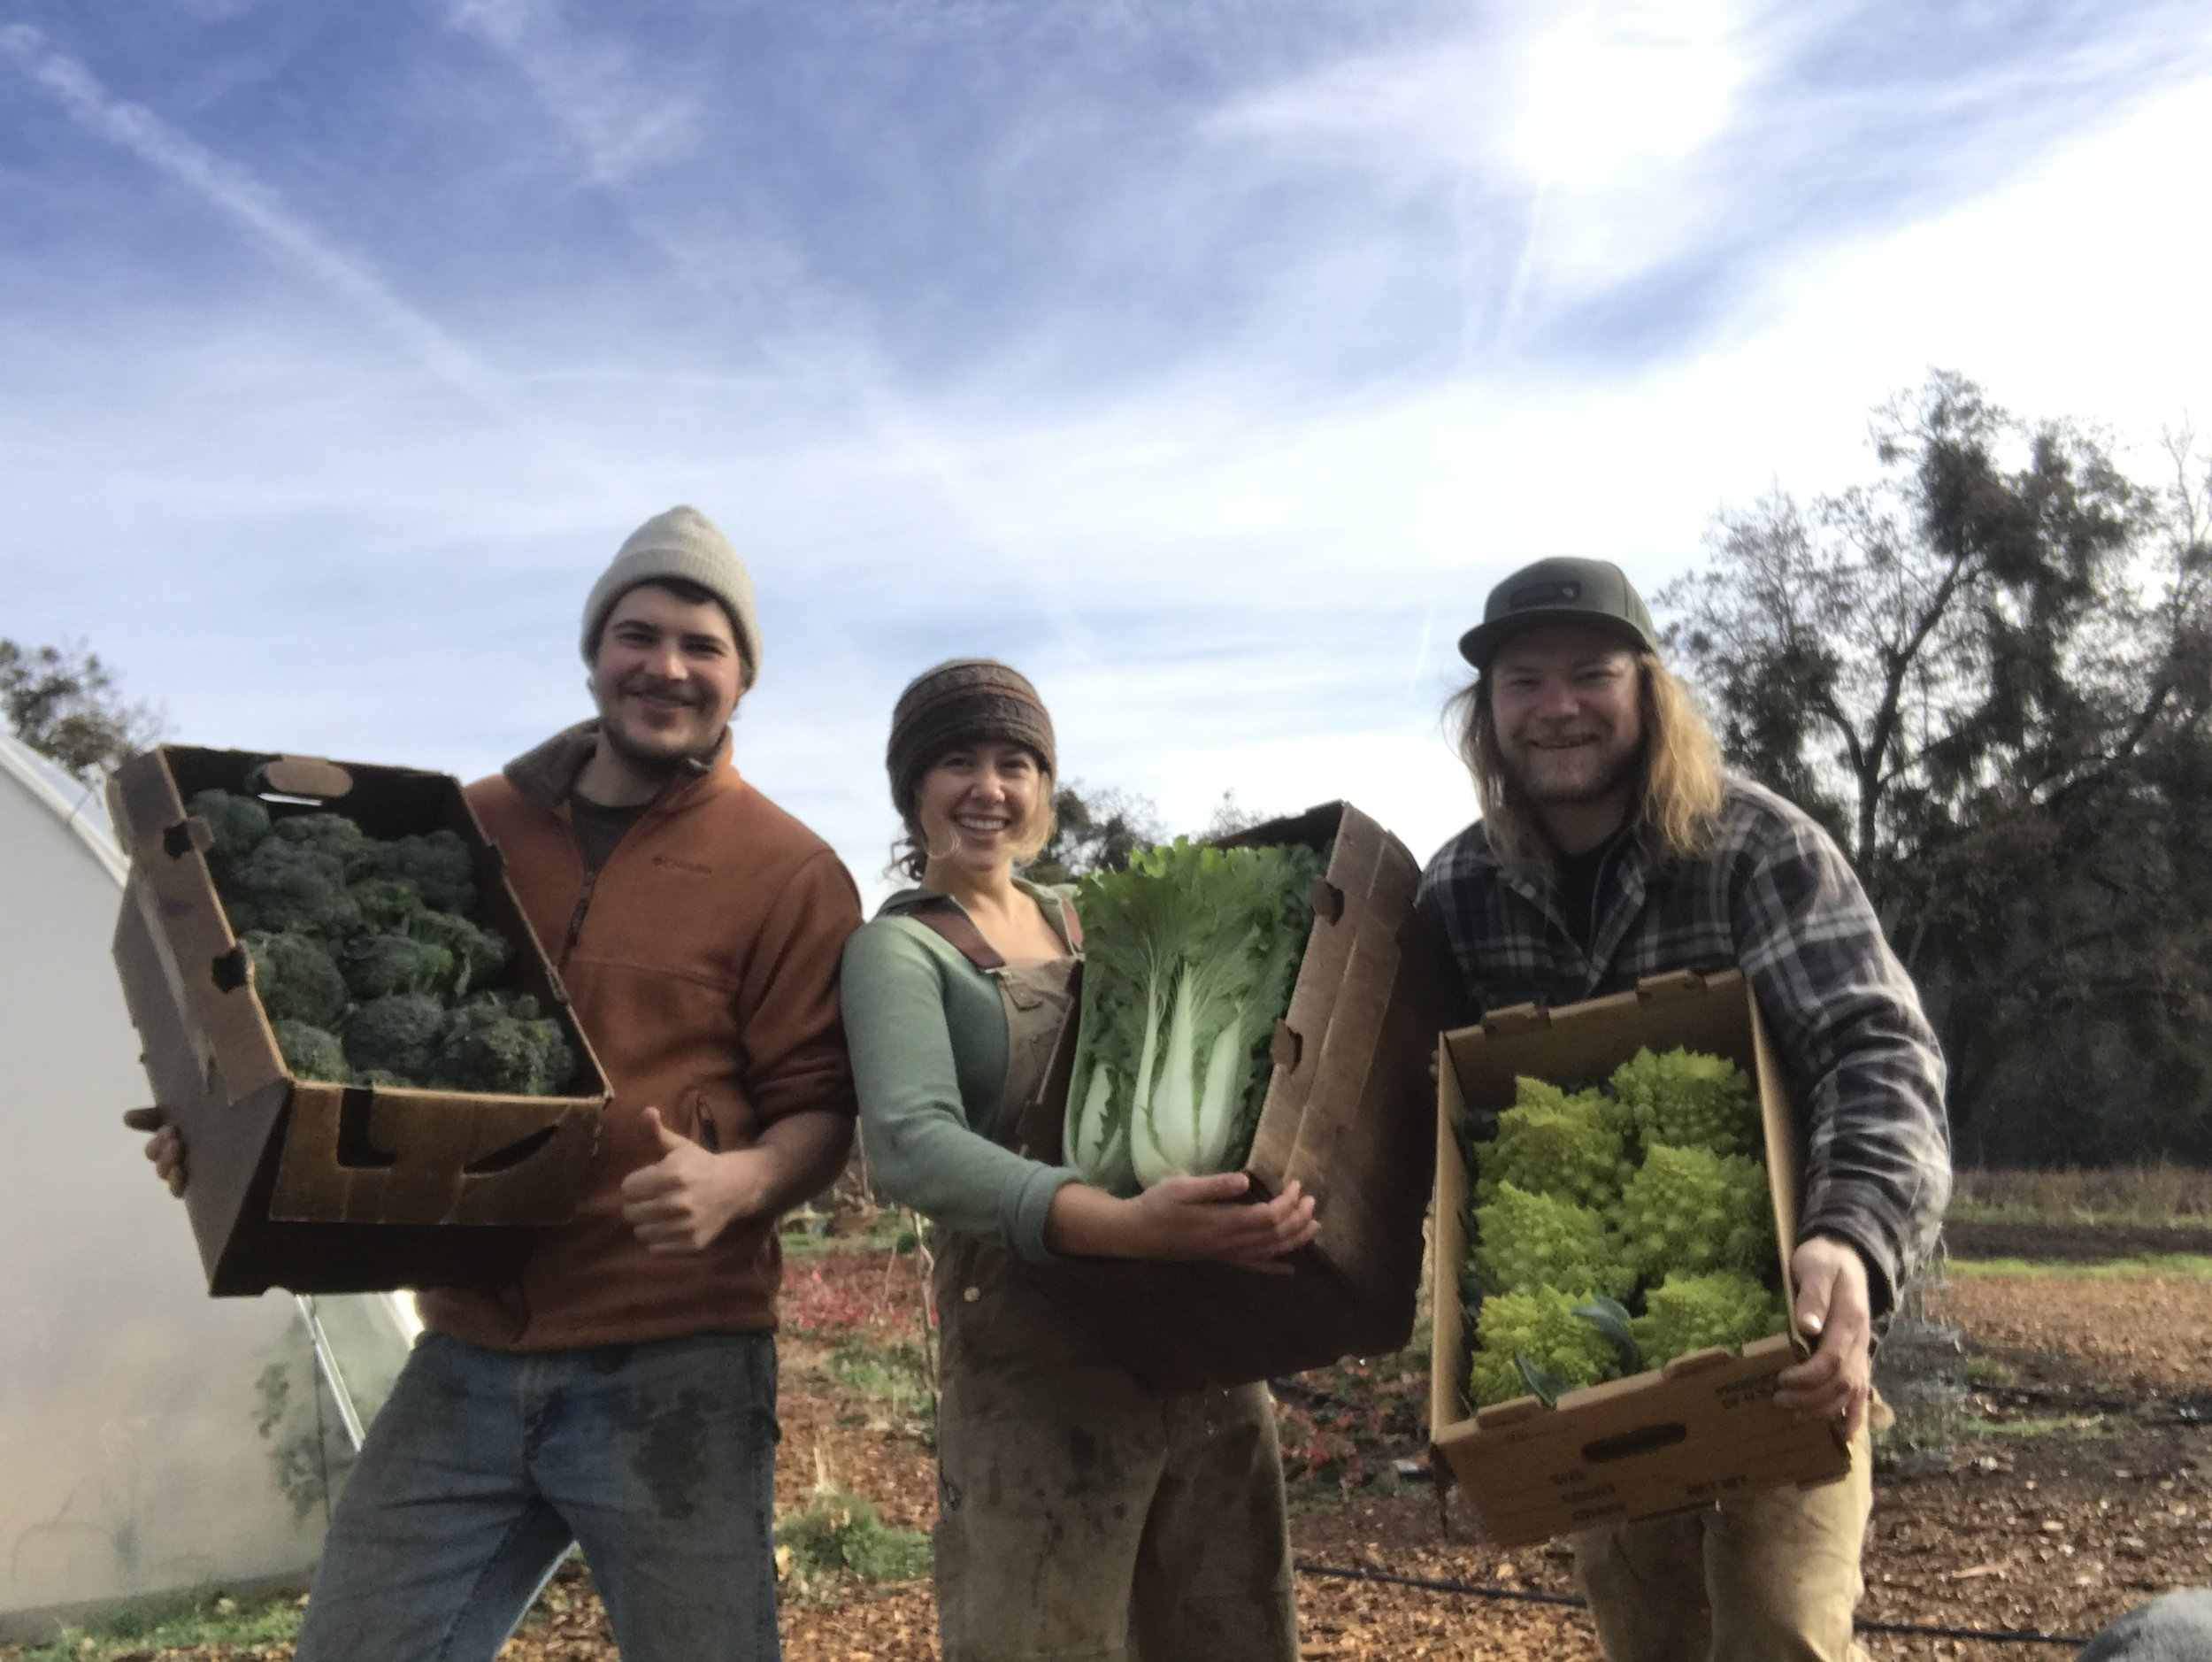 Our Team - Laughing Mother Farm team is dedicated to growing fresh local organic produce for the sierra foothill region. Learn more about who we are below or better yet come see us at a local farmers Market or at the Farm.